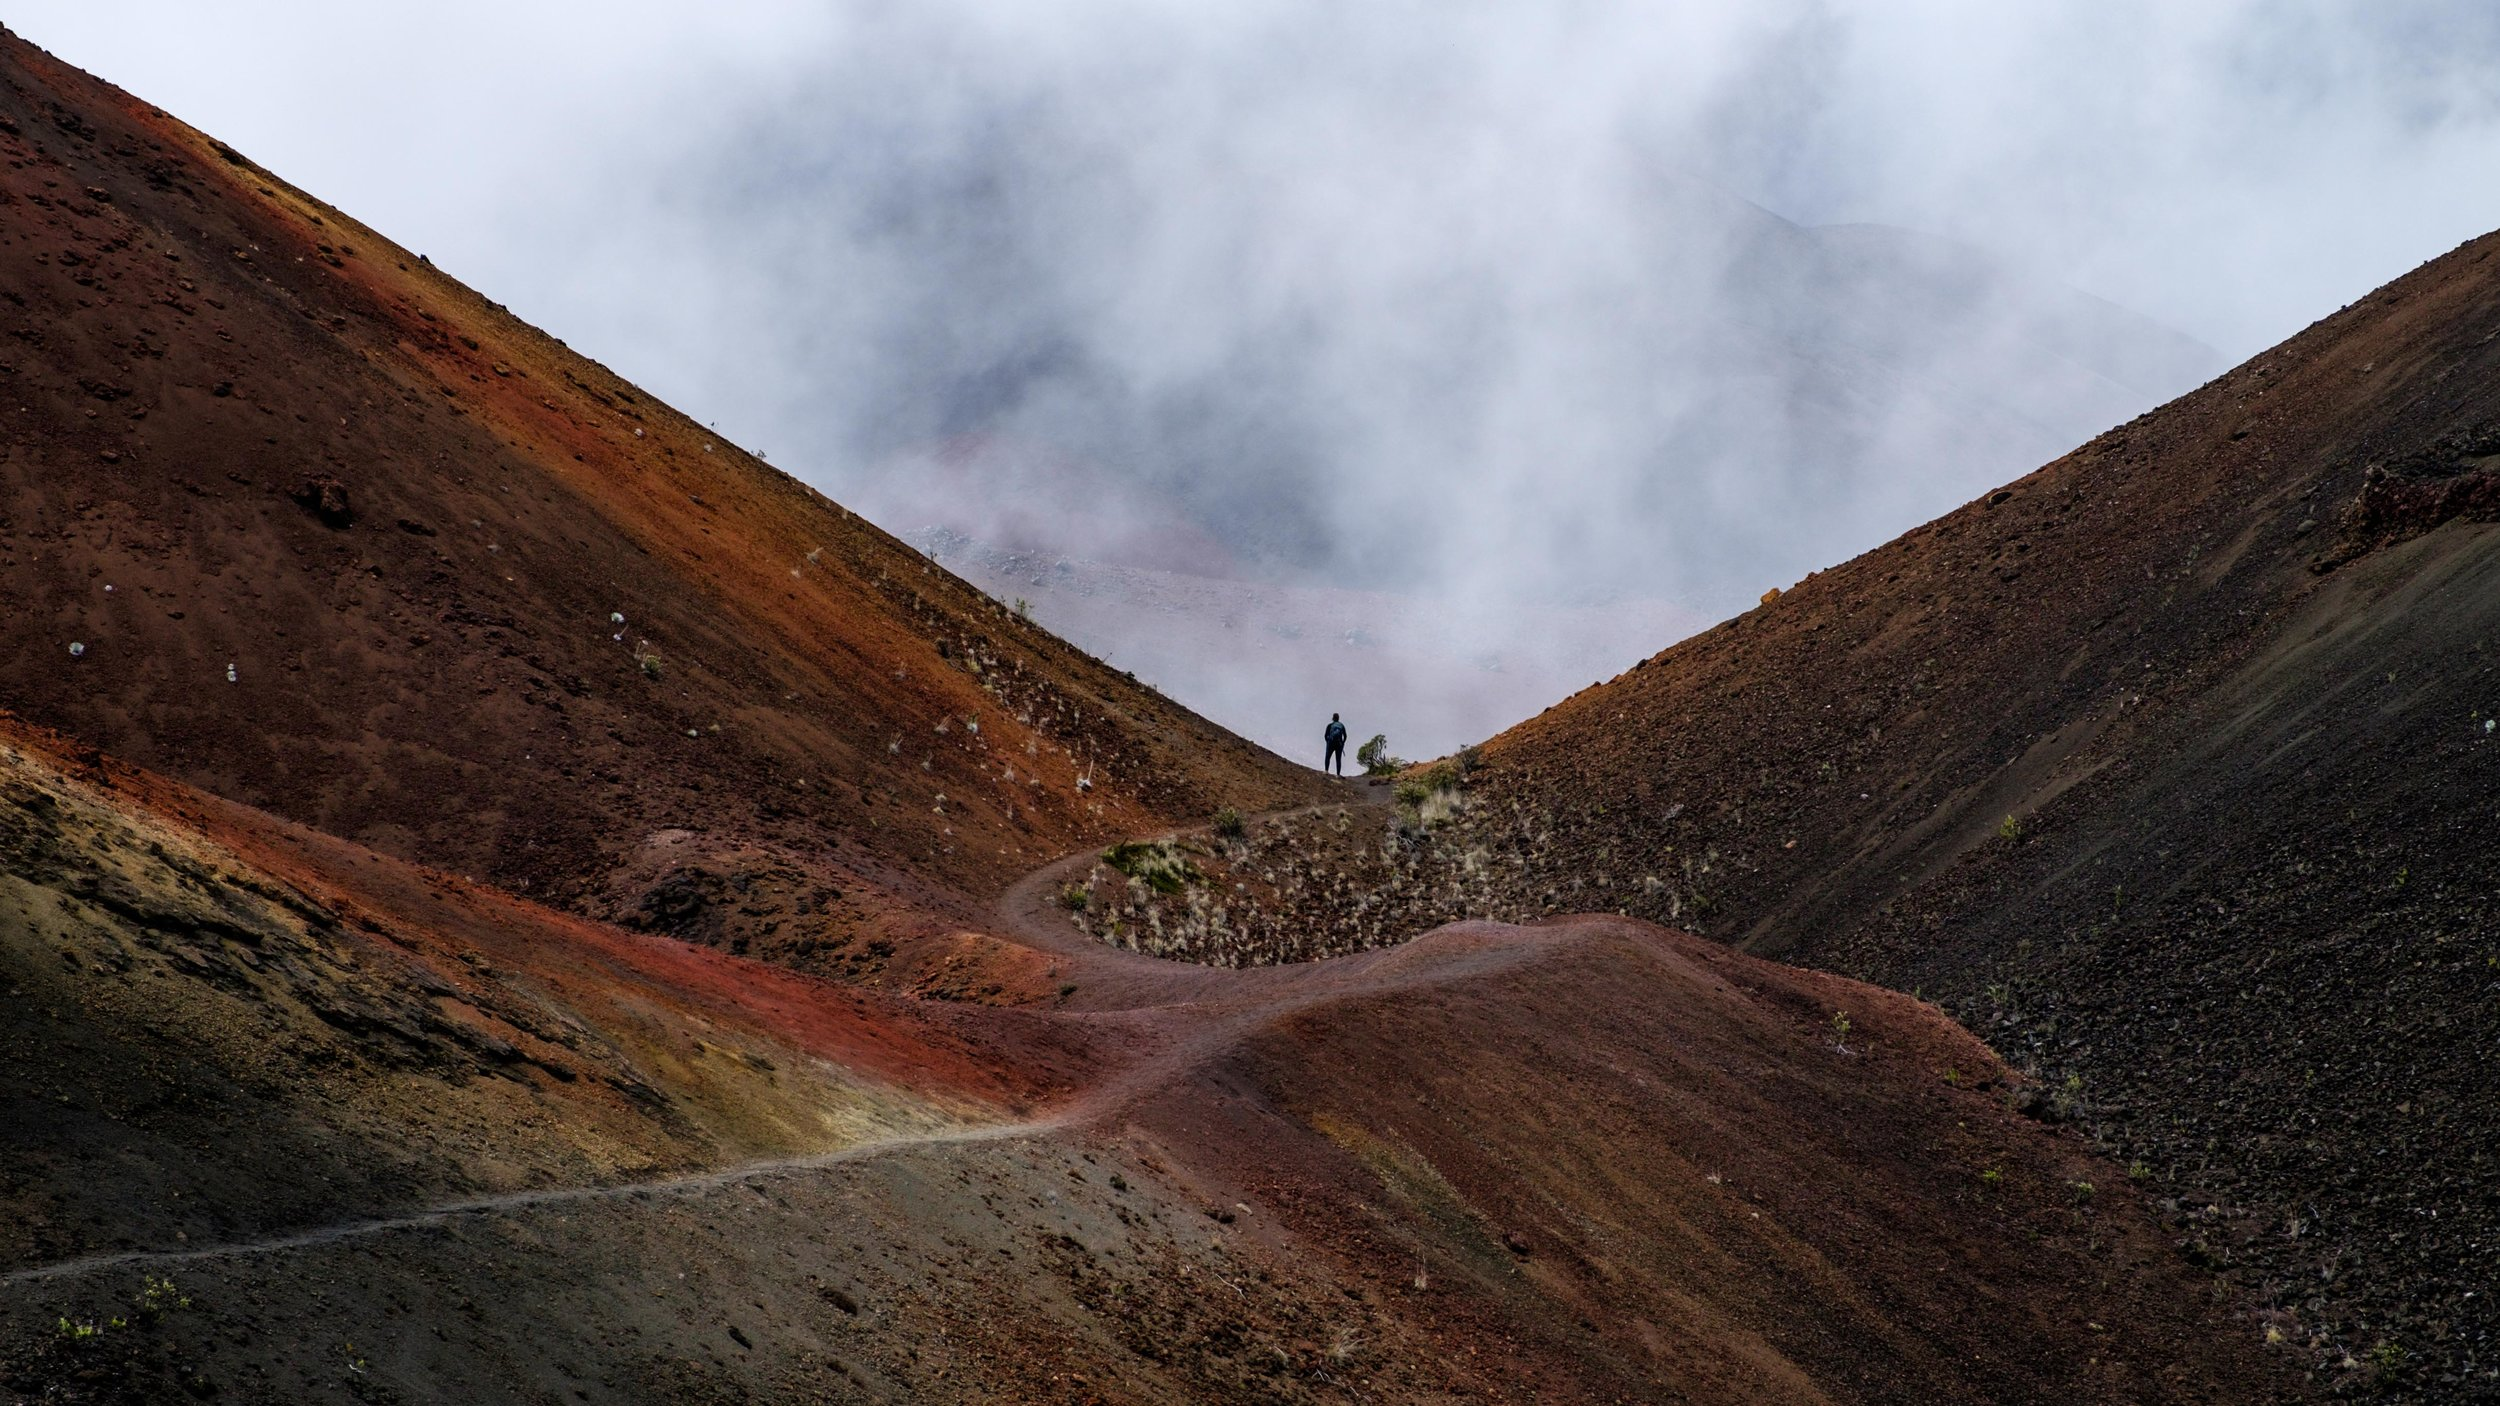 Surreal terrain washed with rich color on the cinder-cone landscape of the Haleakala Crater.